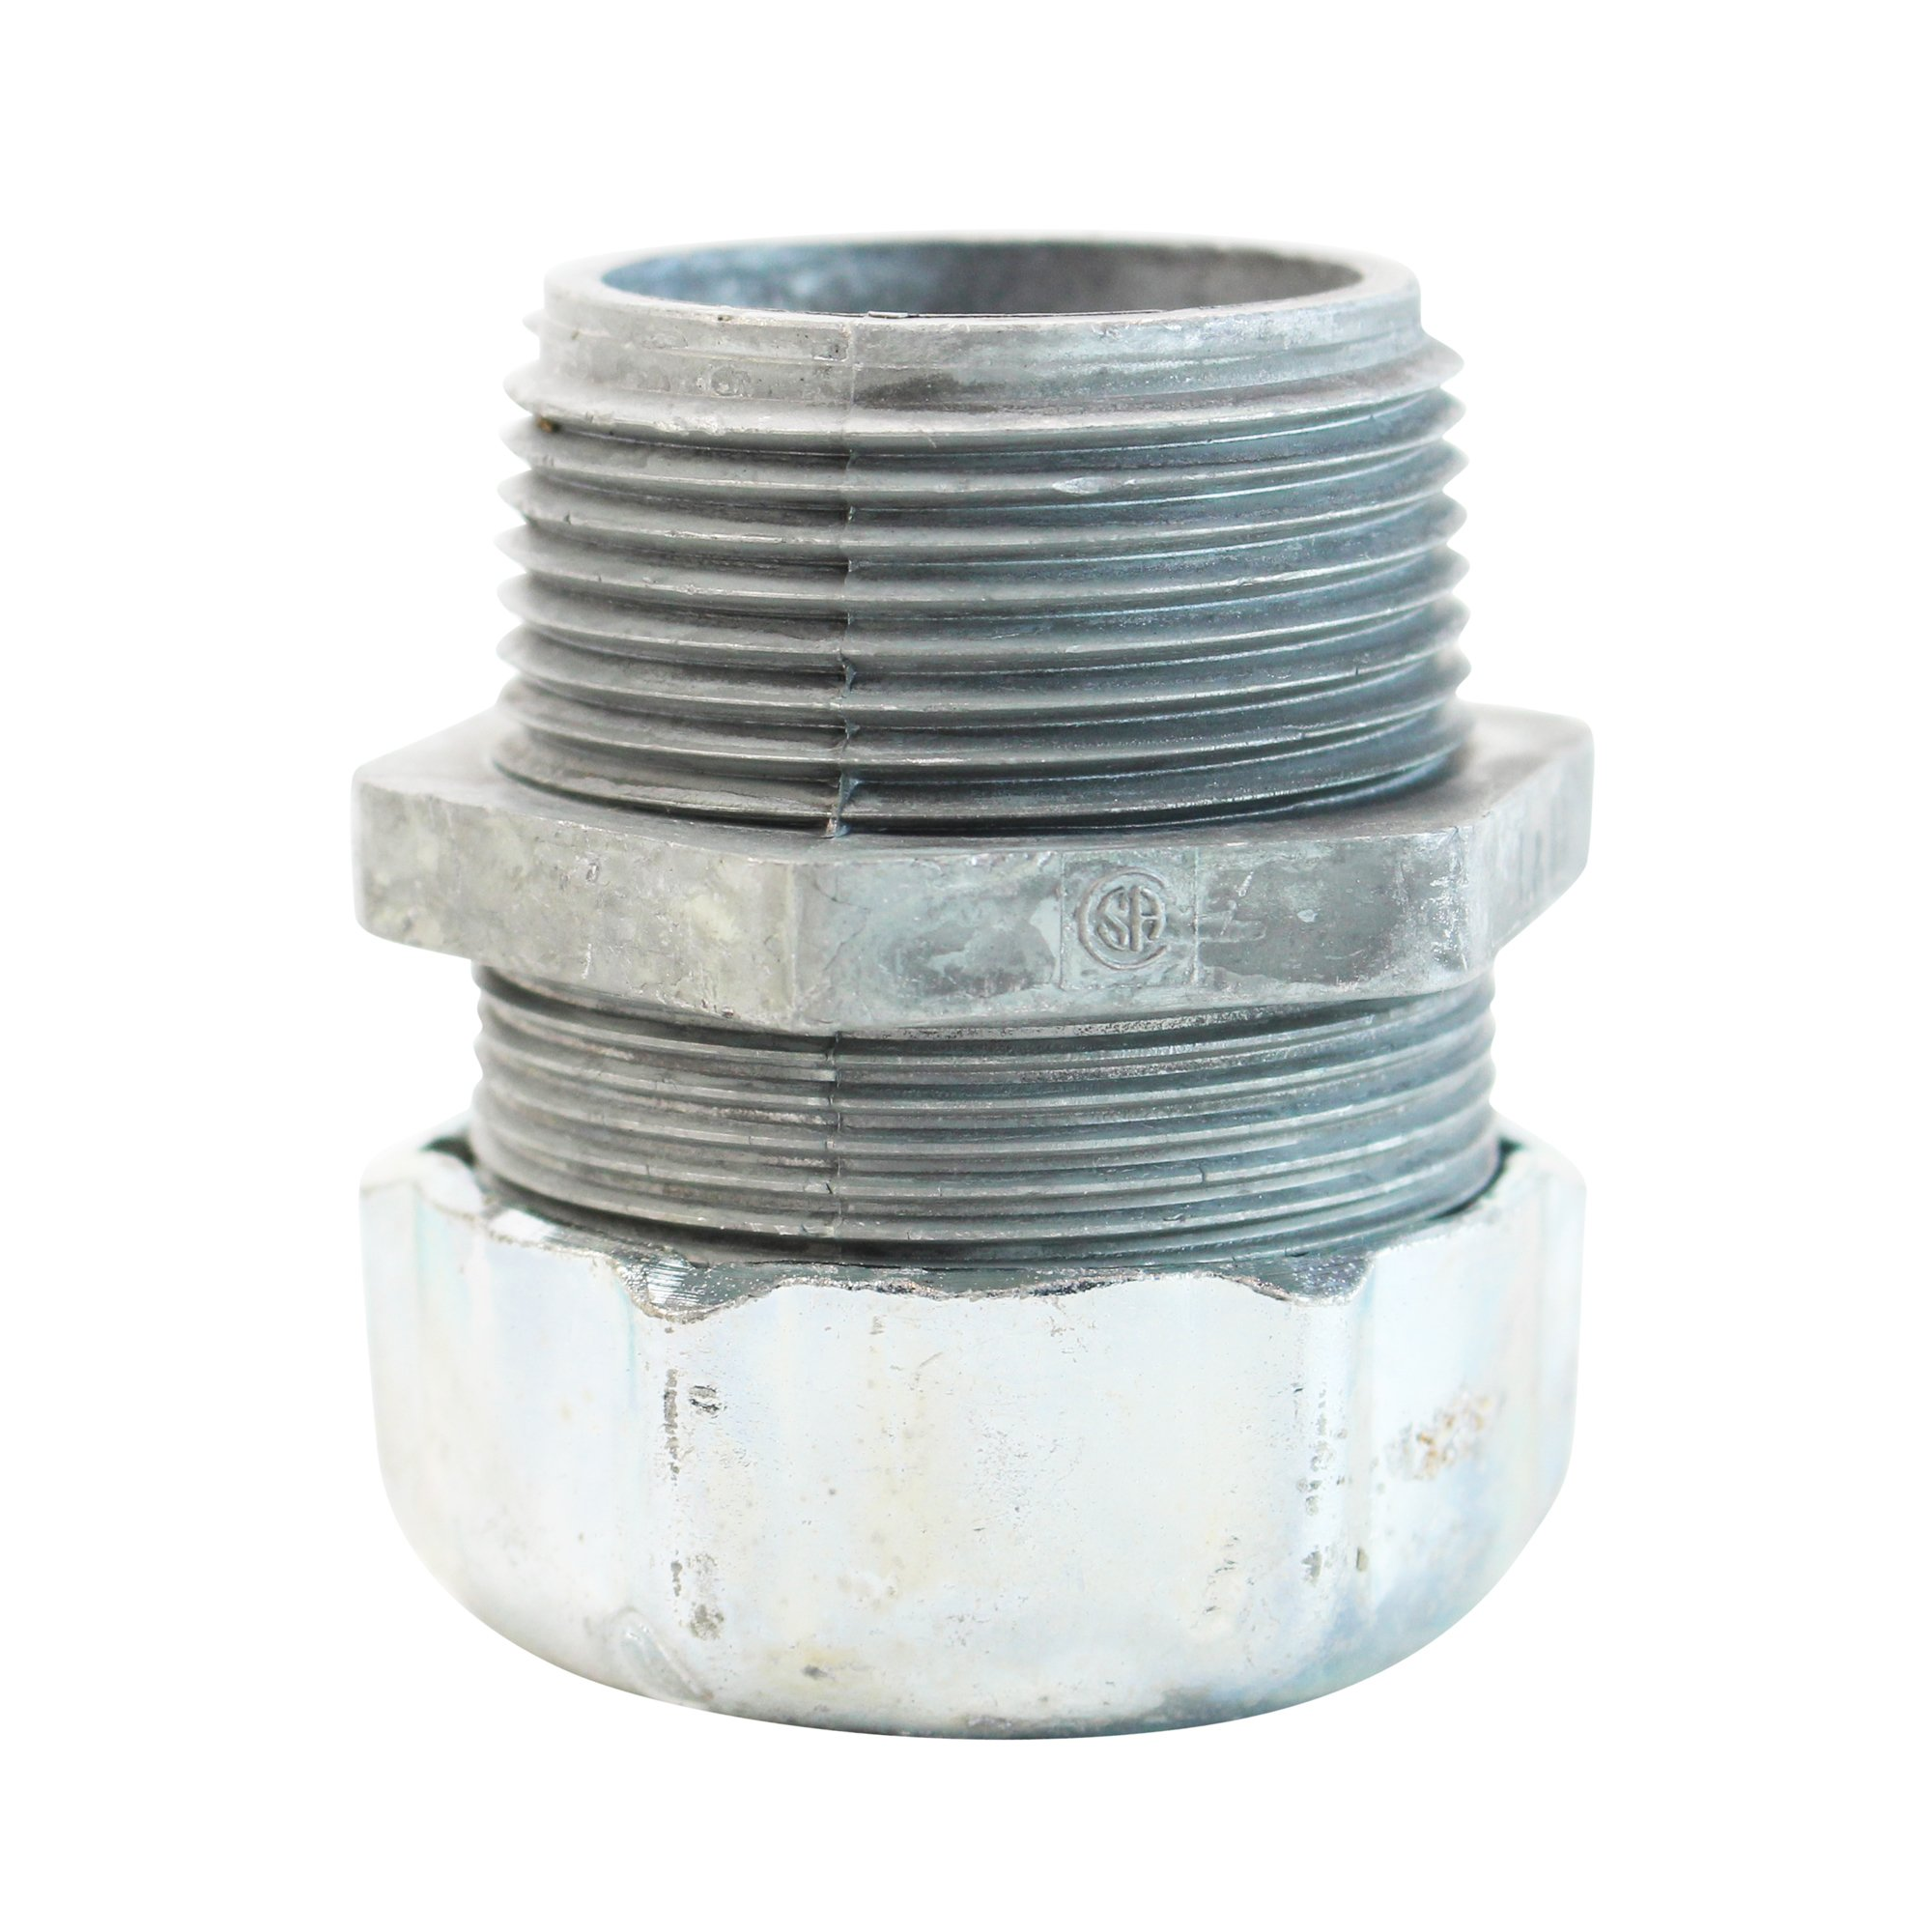 Thomas & Betts 2559 Liquidtight Strain Relief Cord Connector 1-1/4'' Male, Die-Cast Zinc (5 Pack)